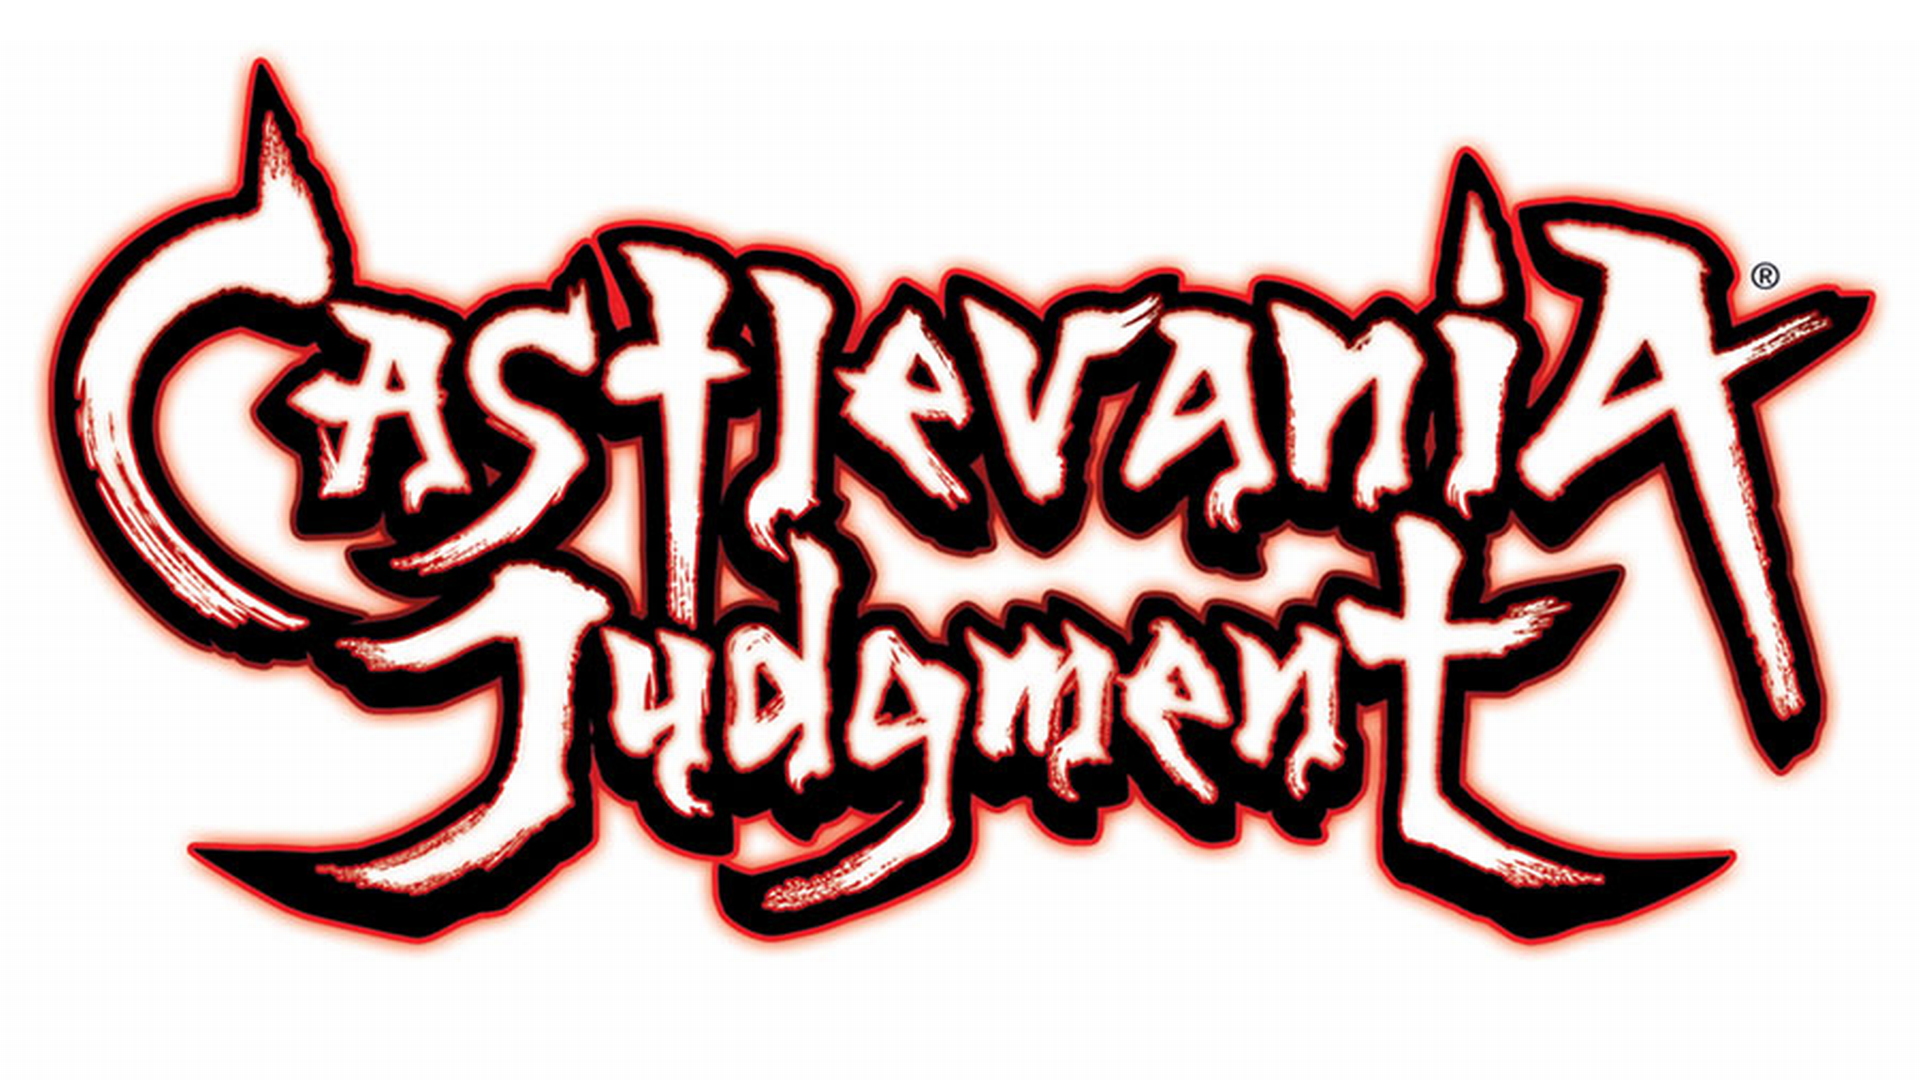 Castlevania: Judgment Logo